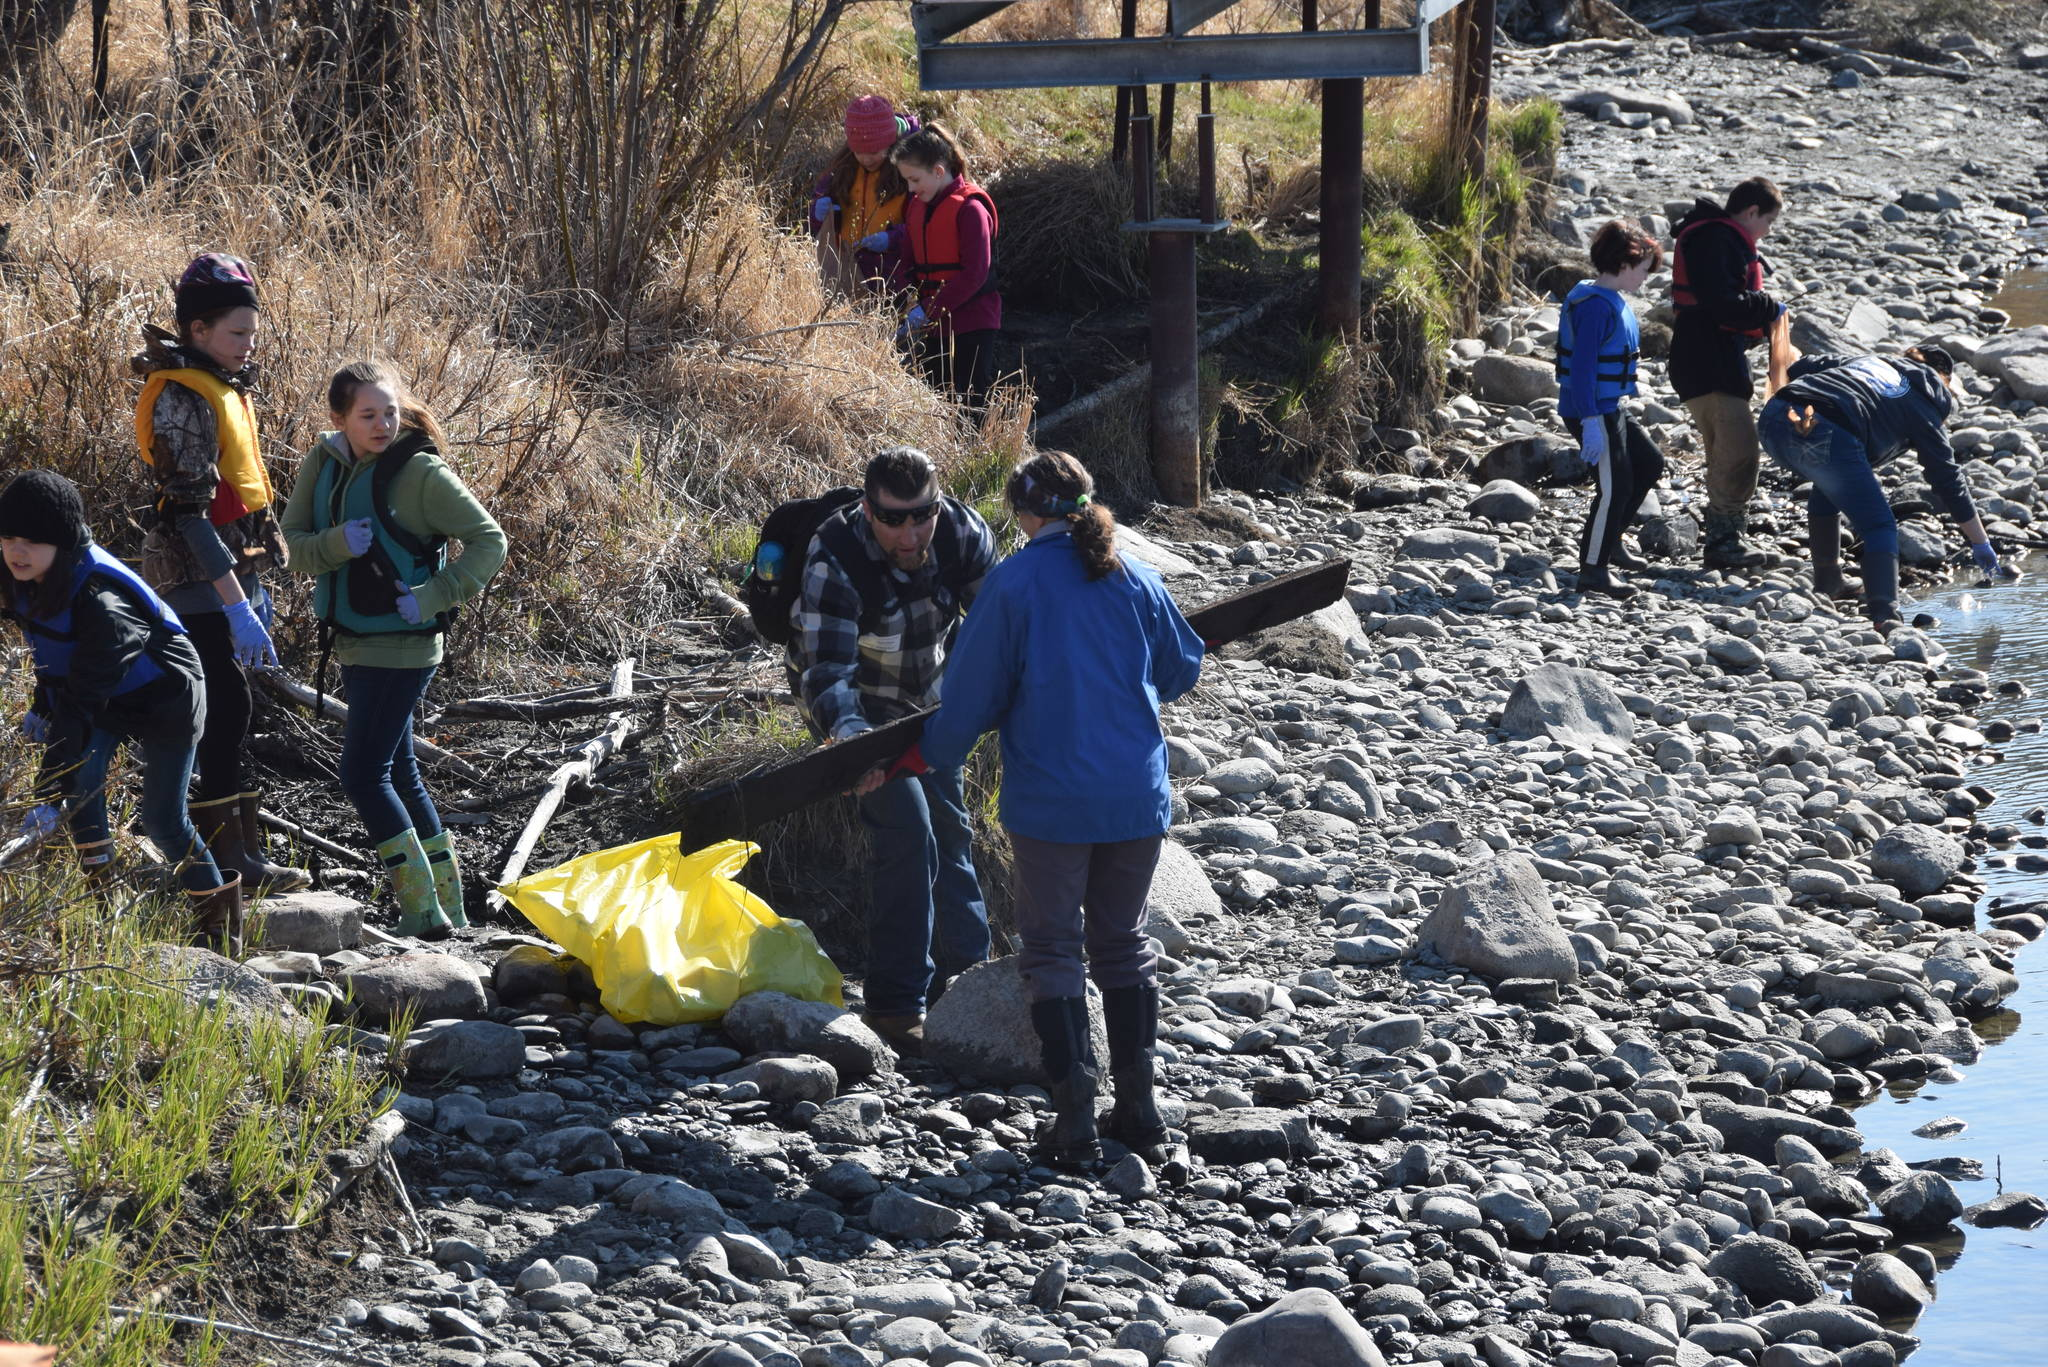 Students from Redoubt Elementary pick up trash along the river during the 6th Annual Kids Kenai River Spring Cleanup at Swiftwater Park in Soldotna, Alaska on May 3, 2019. (Photo by Brian Mazurek/Peninsula Clarion)